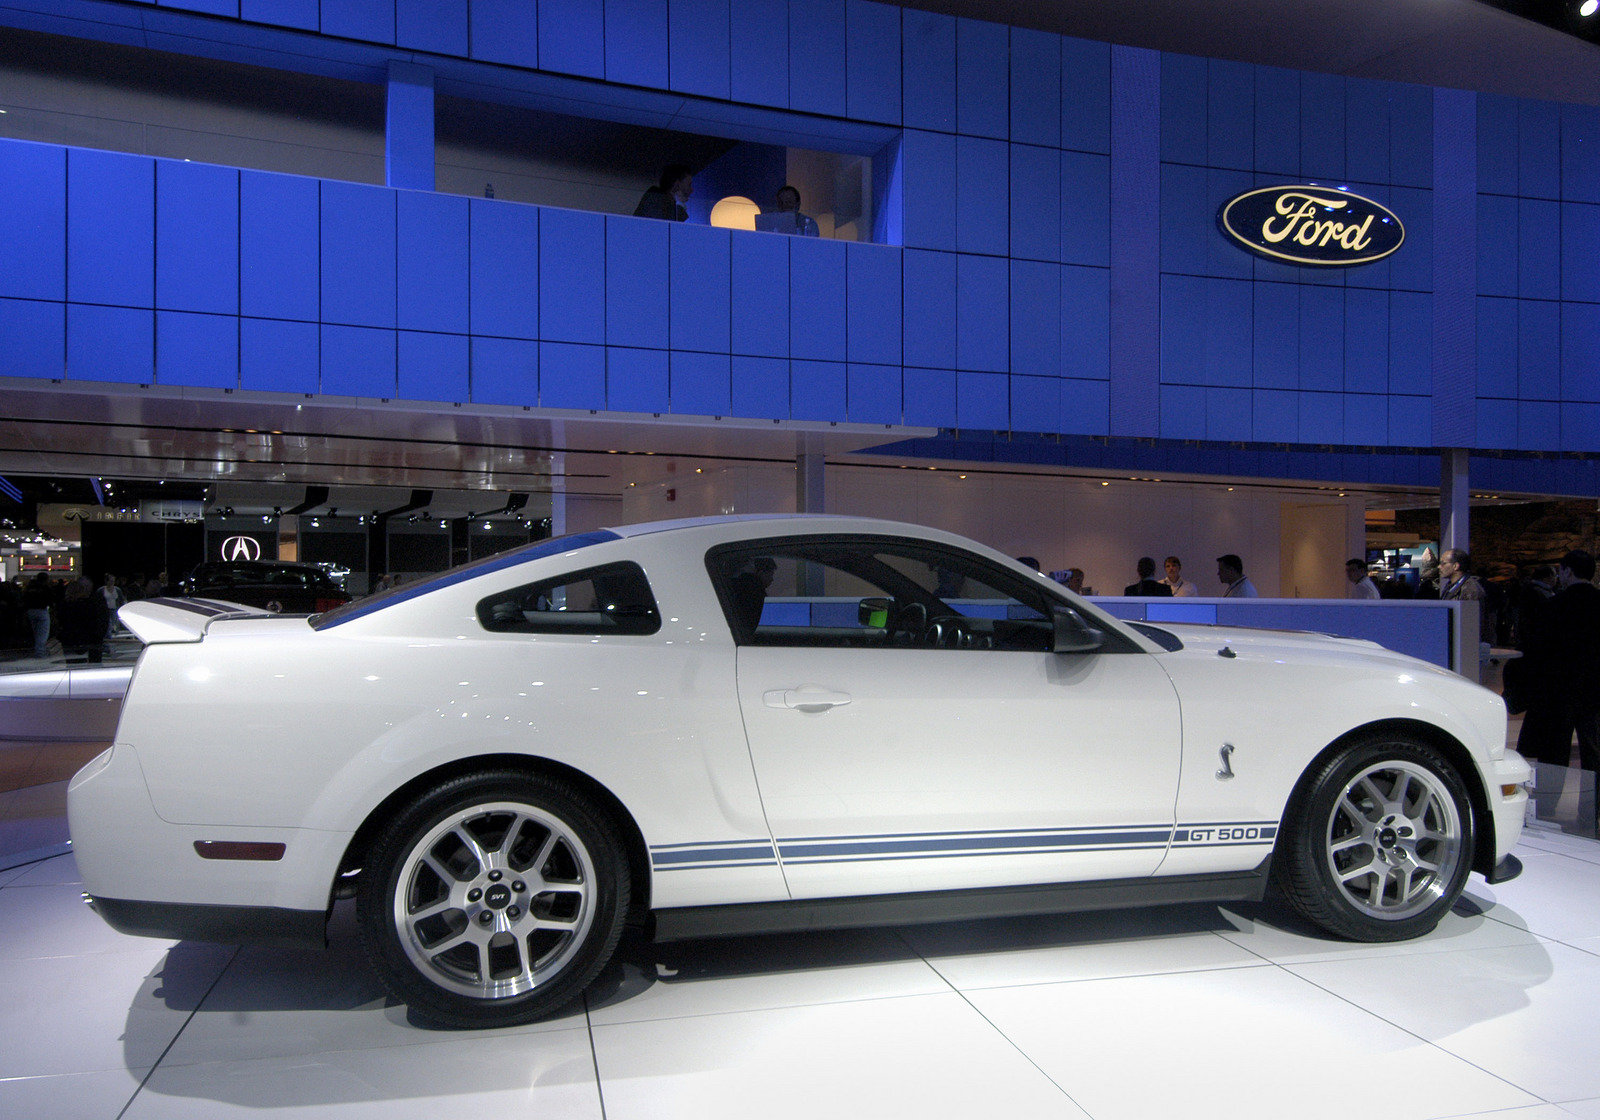 2007 ford mustang shelby gt500 picture 37964 car review top speed. Black Bedroom Furniture Sets. Home Design Ideas